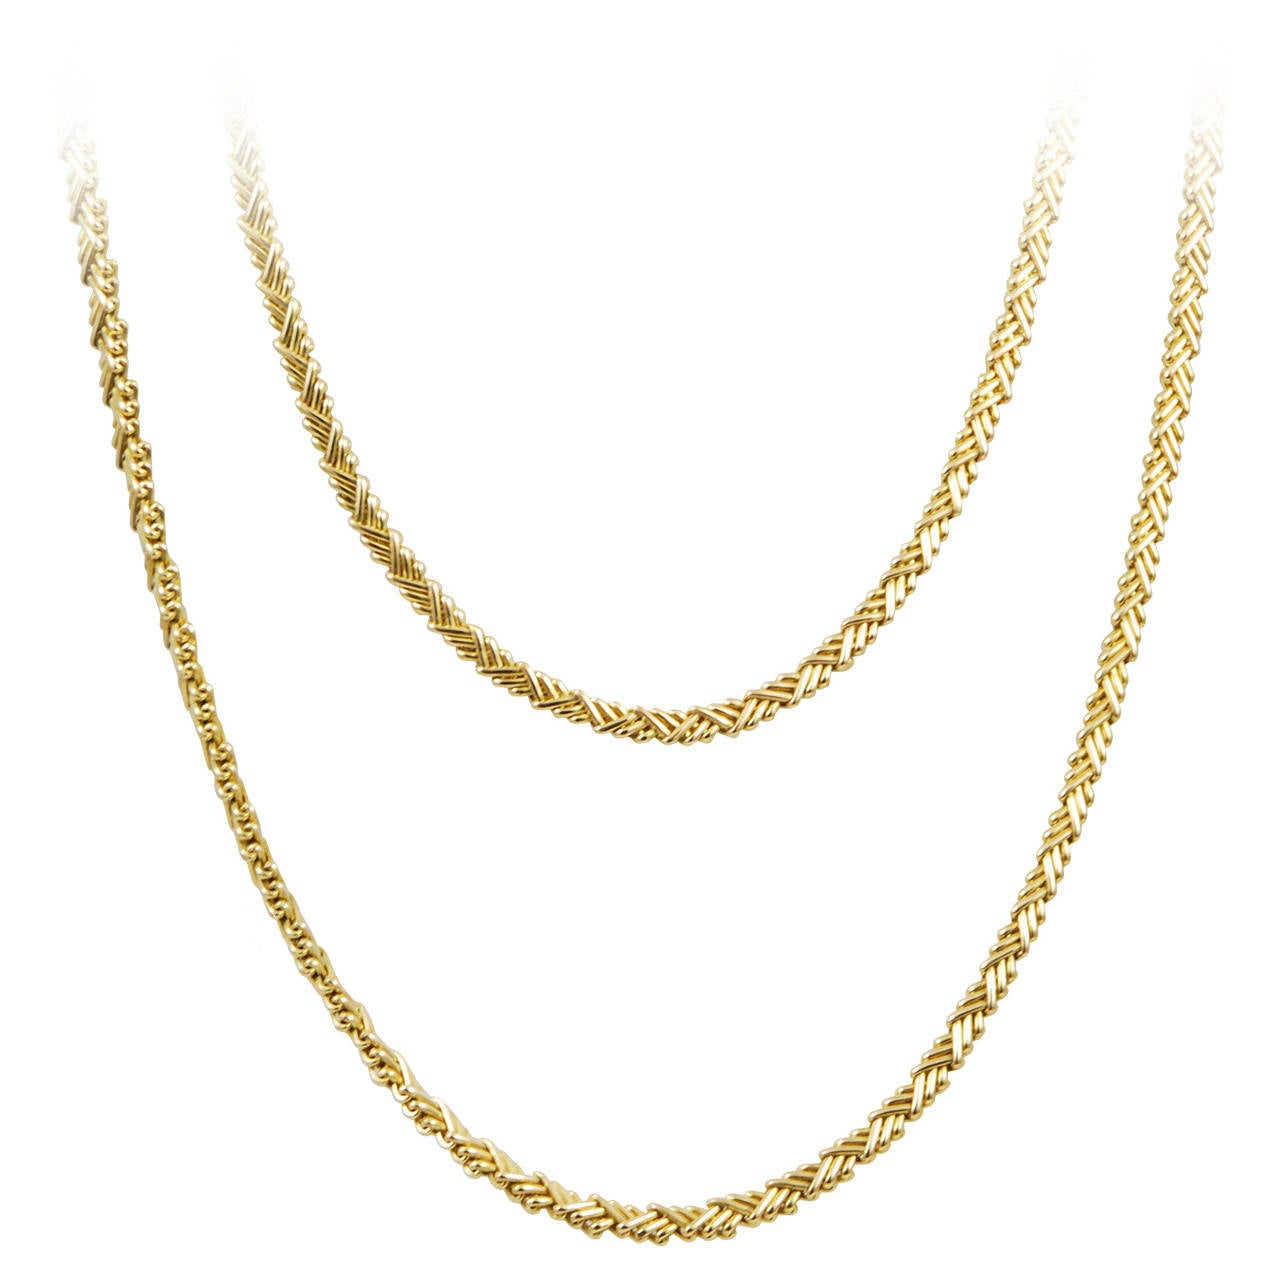 Cartier Long and Flexible Gold Necklace 1